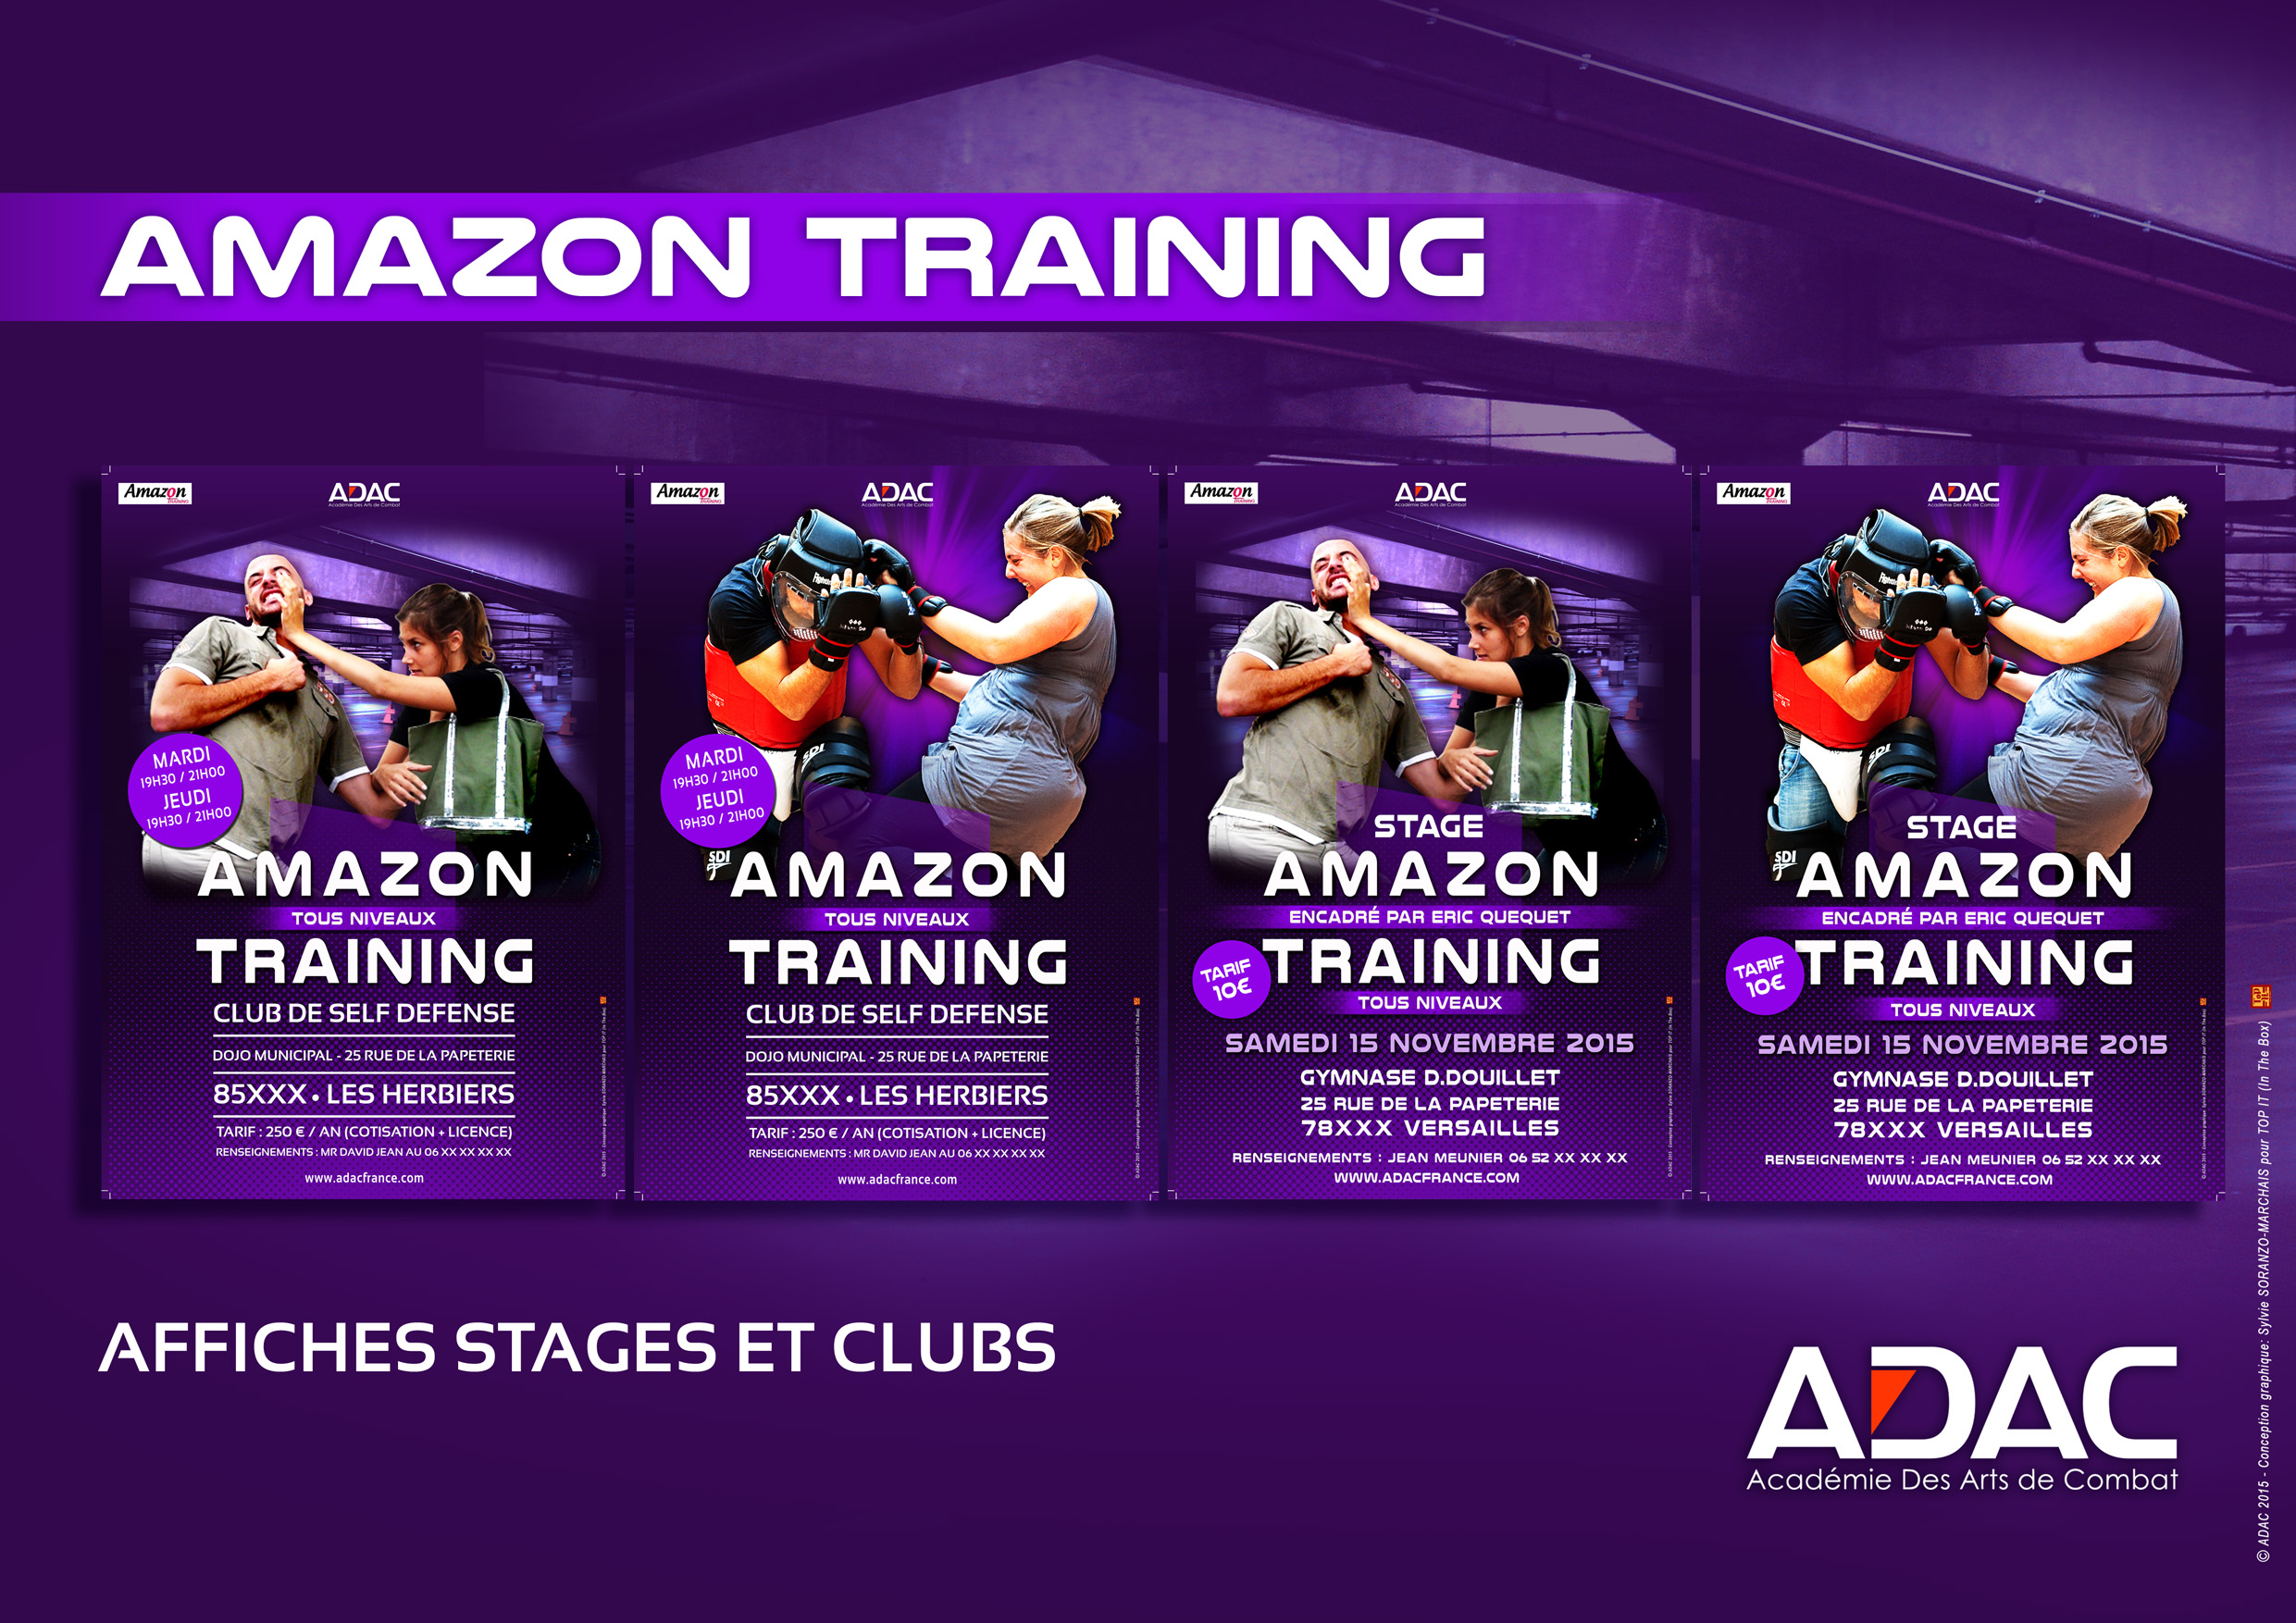 AMAZON_TRAINING